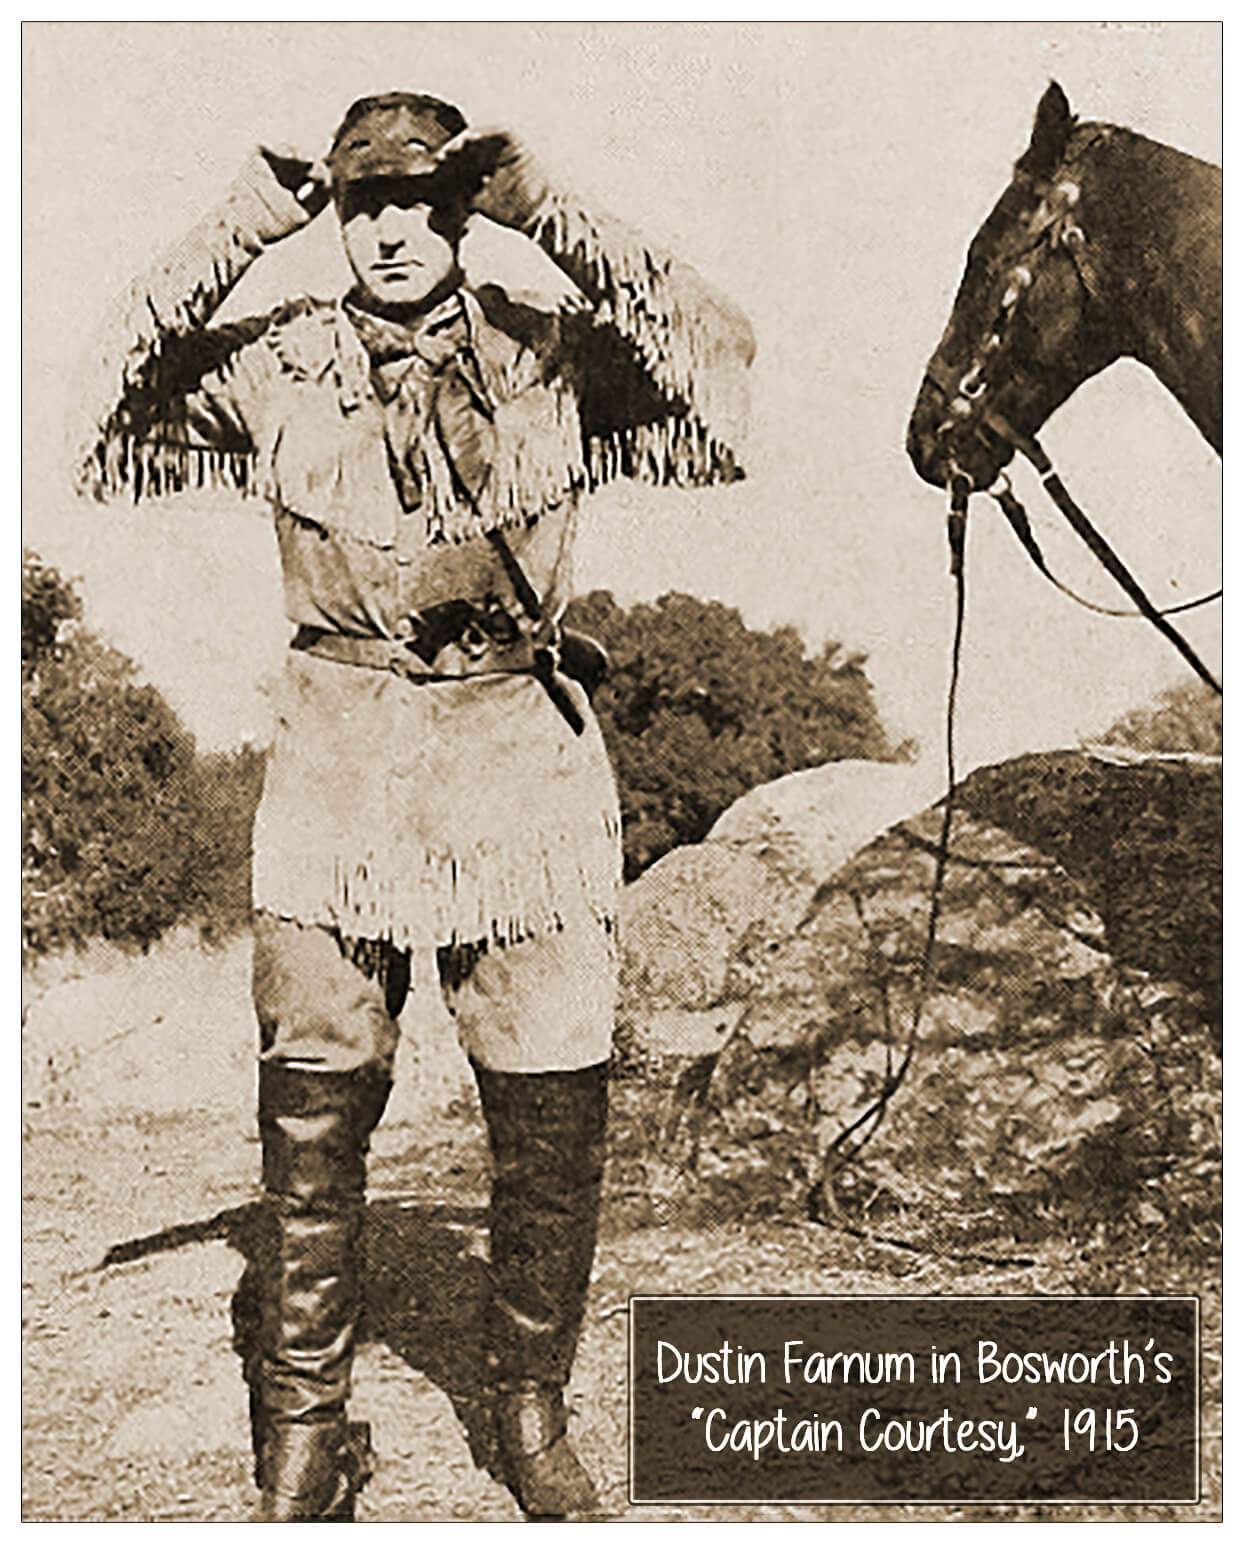 Dustin Farnum in Captain Courtesy for Bosworth, 1915 4x5